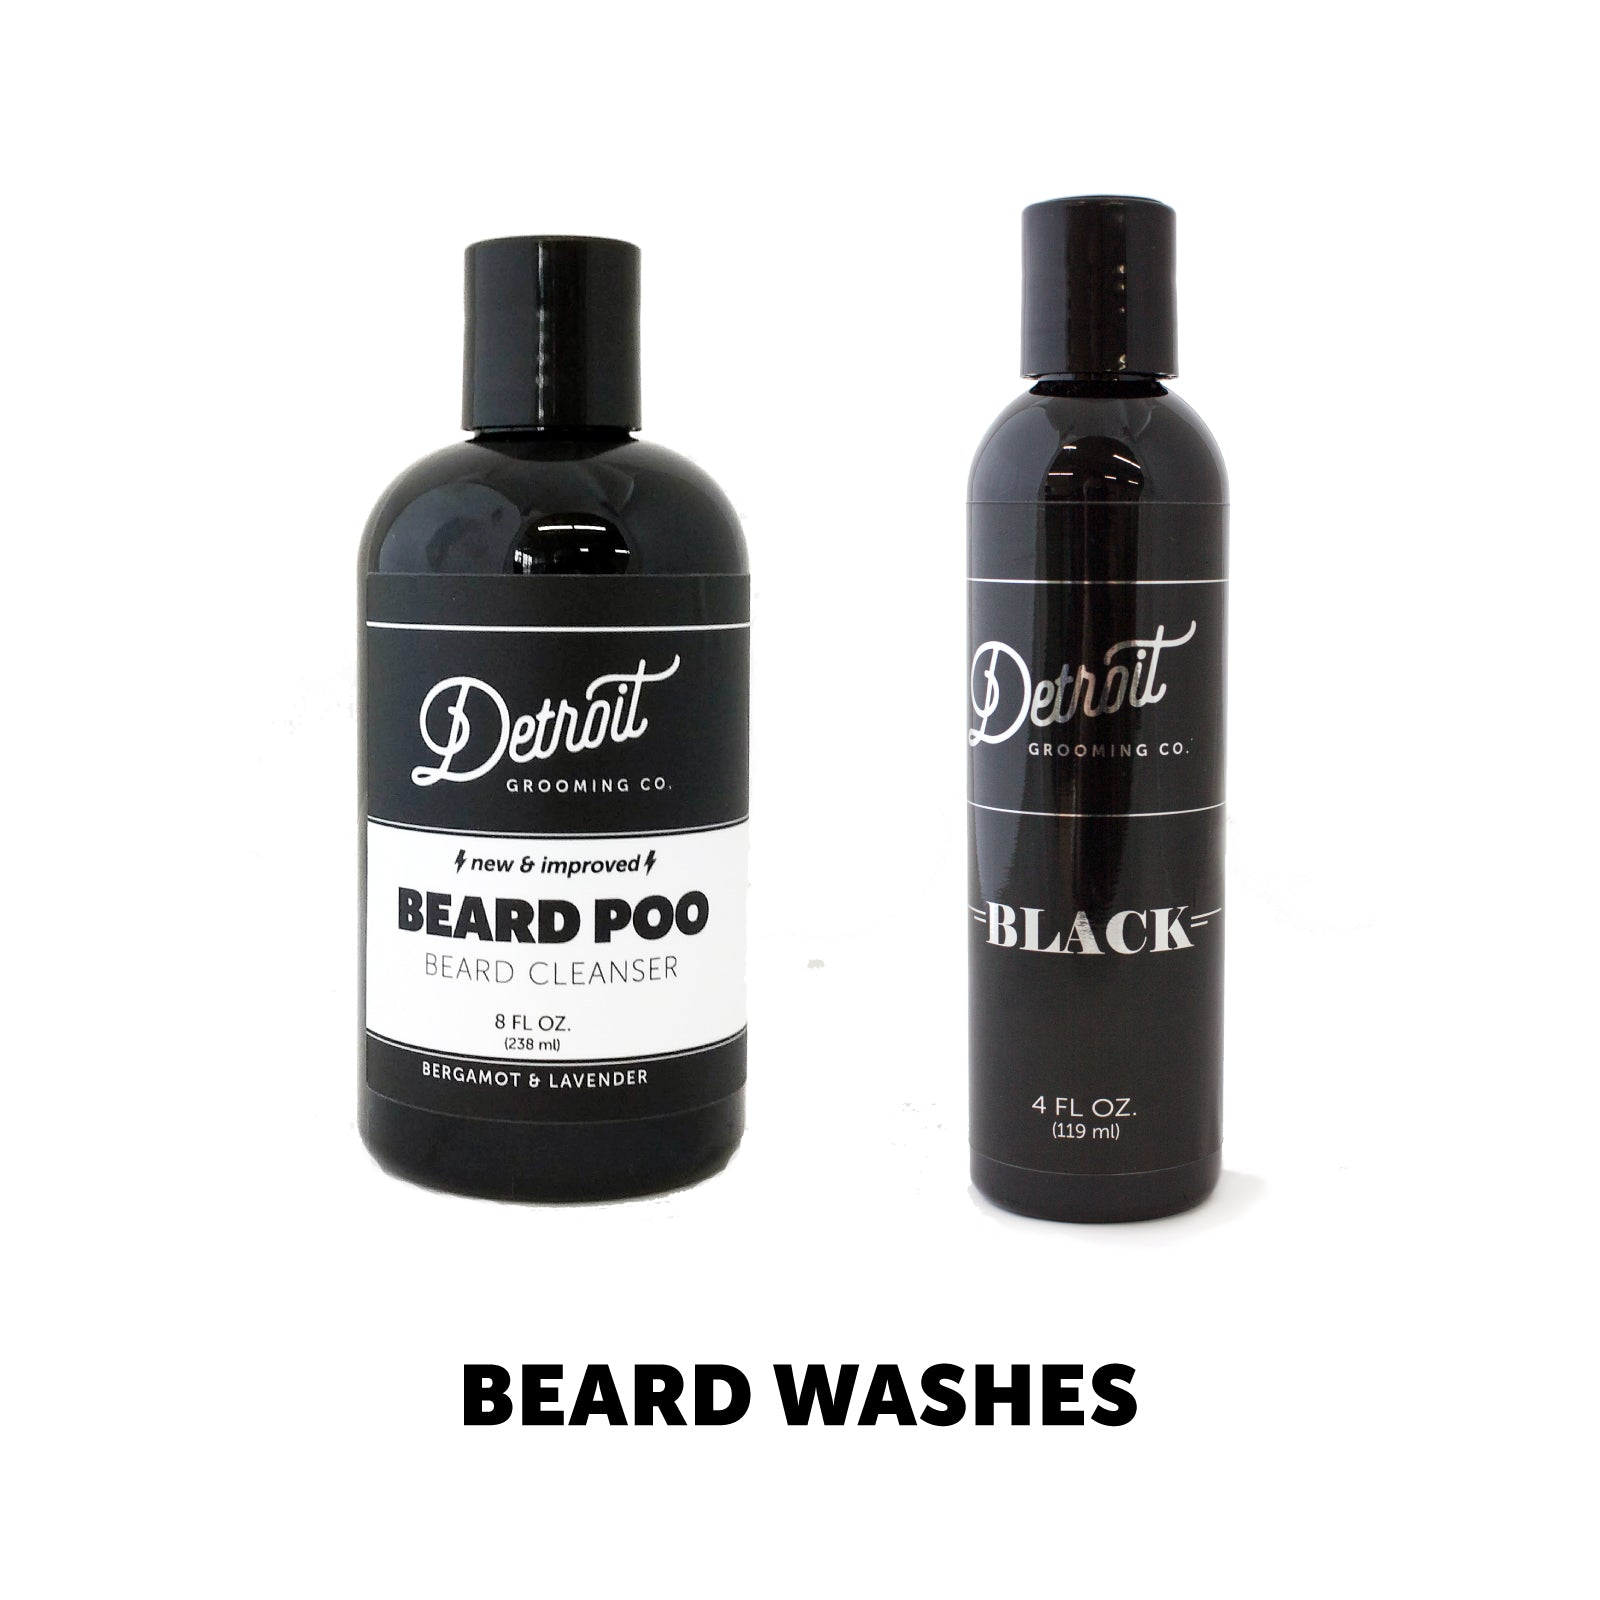 Beard Grooming Products - Beard Wash Collection